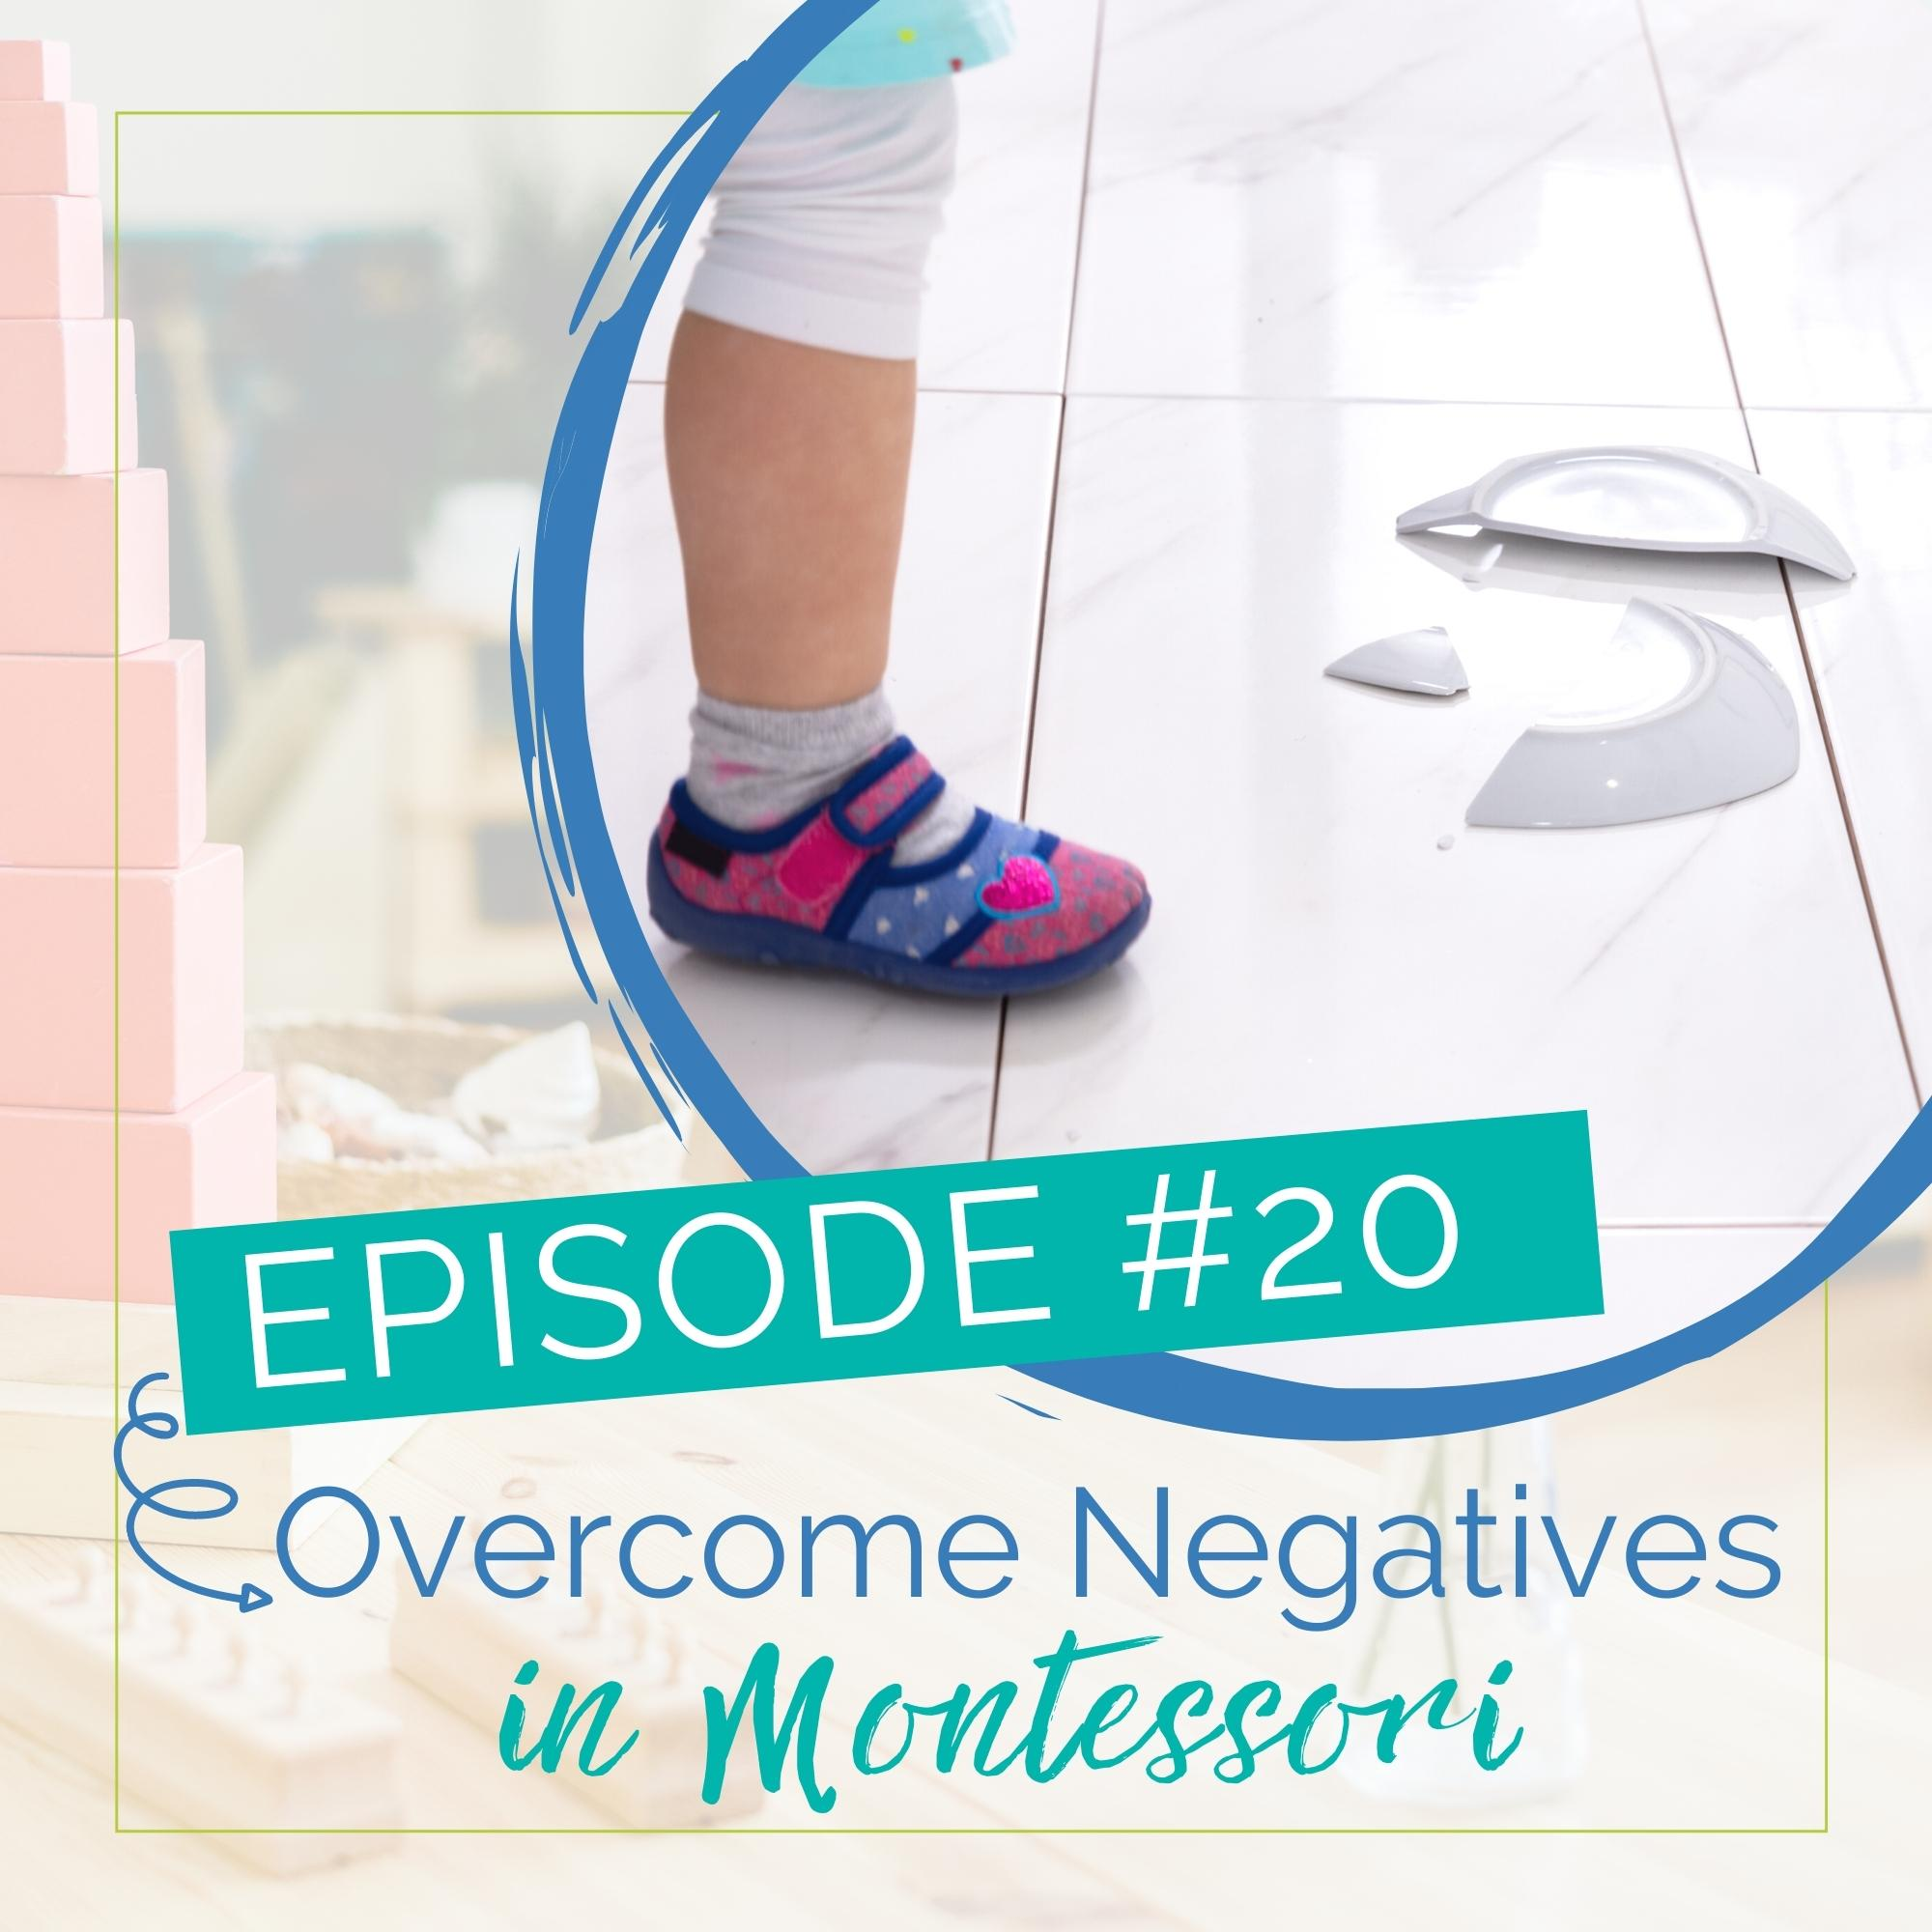 Episode 20: Overcoming Negatives in Montessori show art